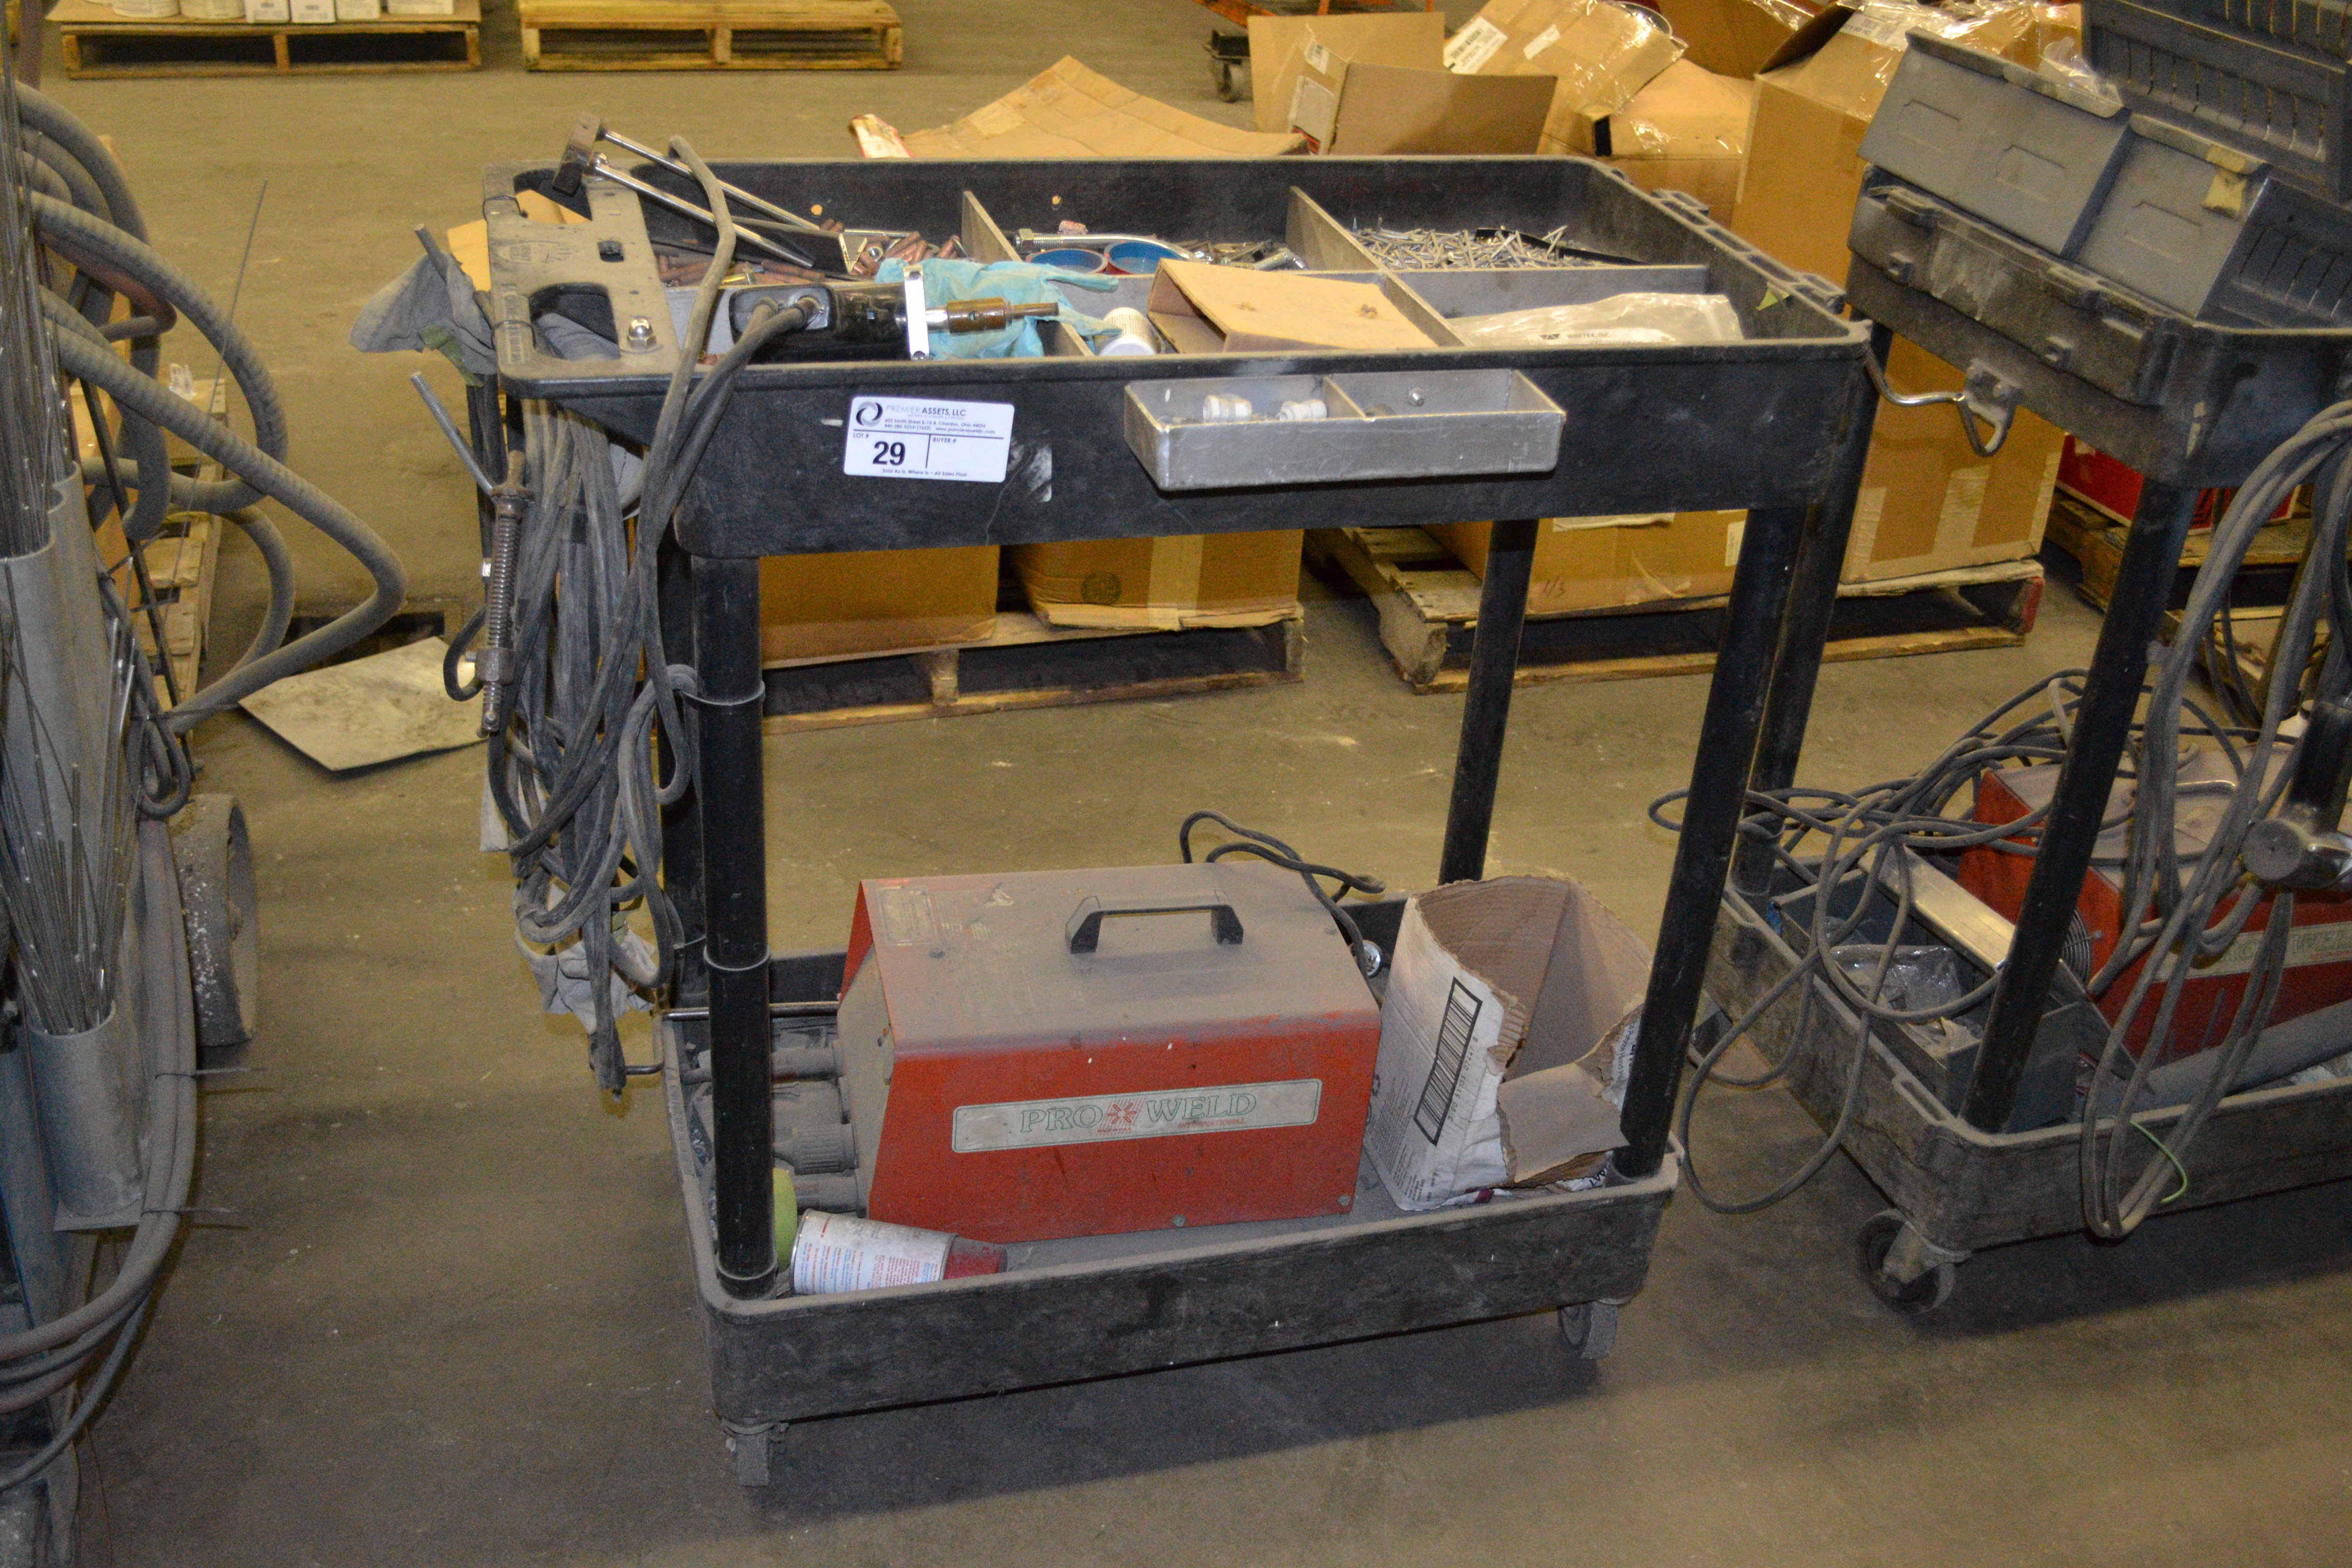 Lot 29 - cart with Pro Weld CD-312 welder and misc.